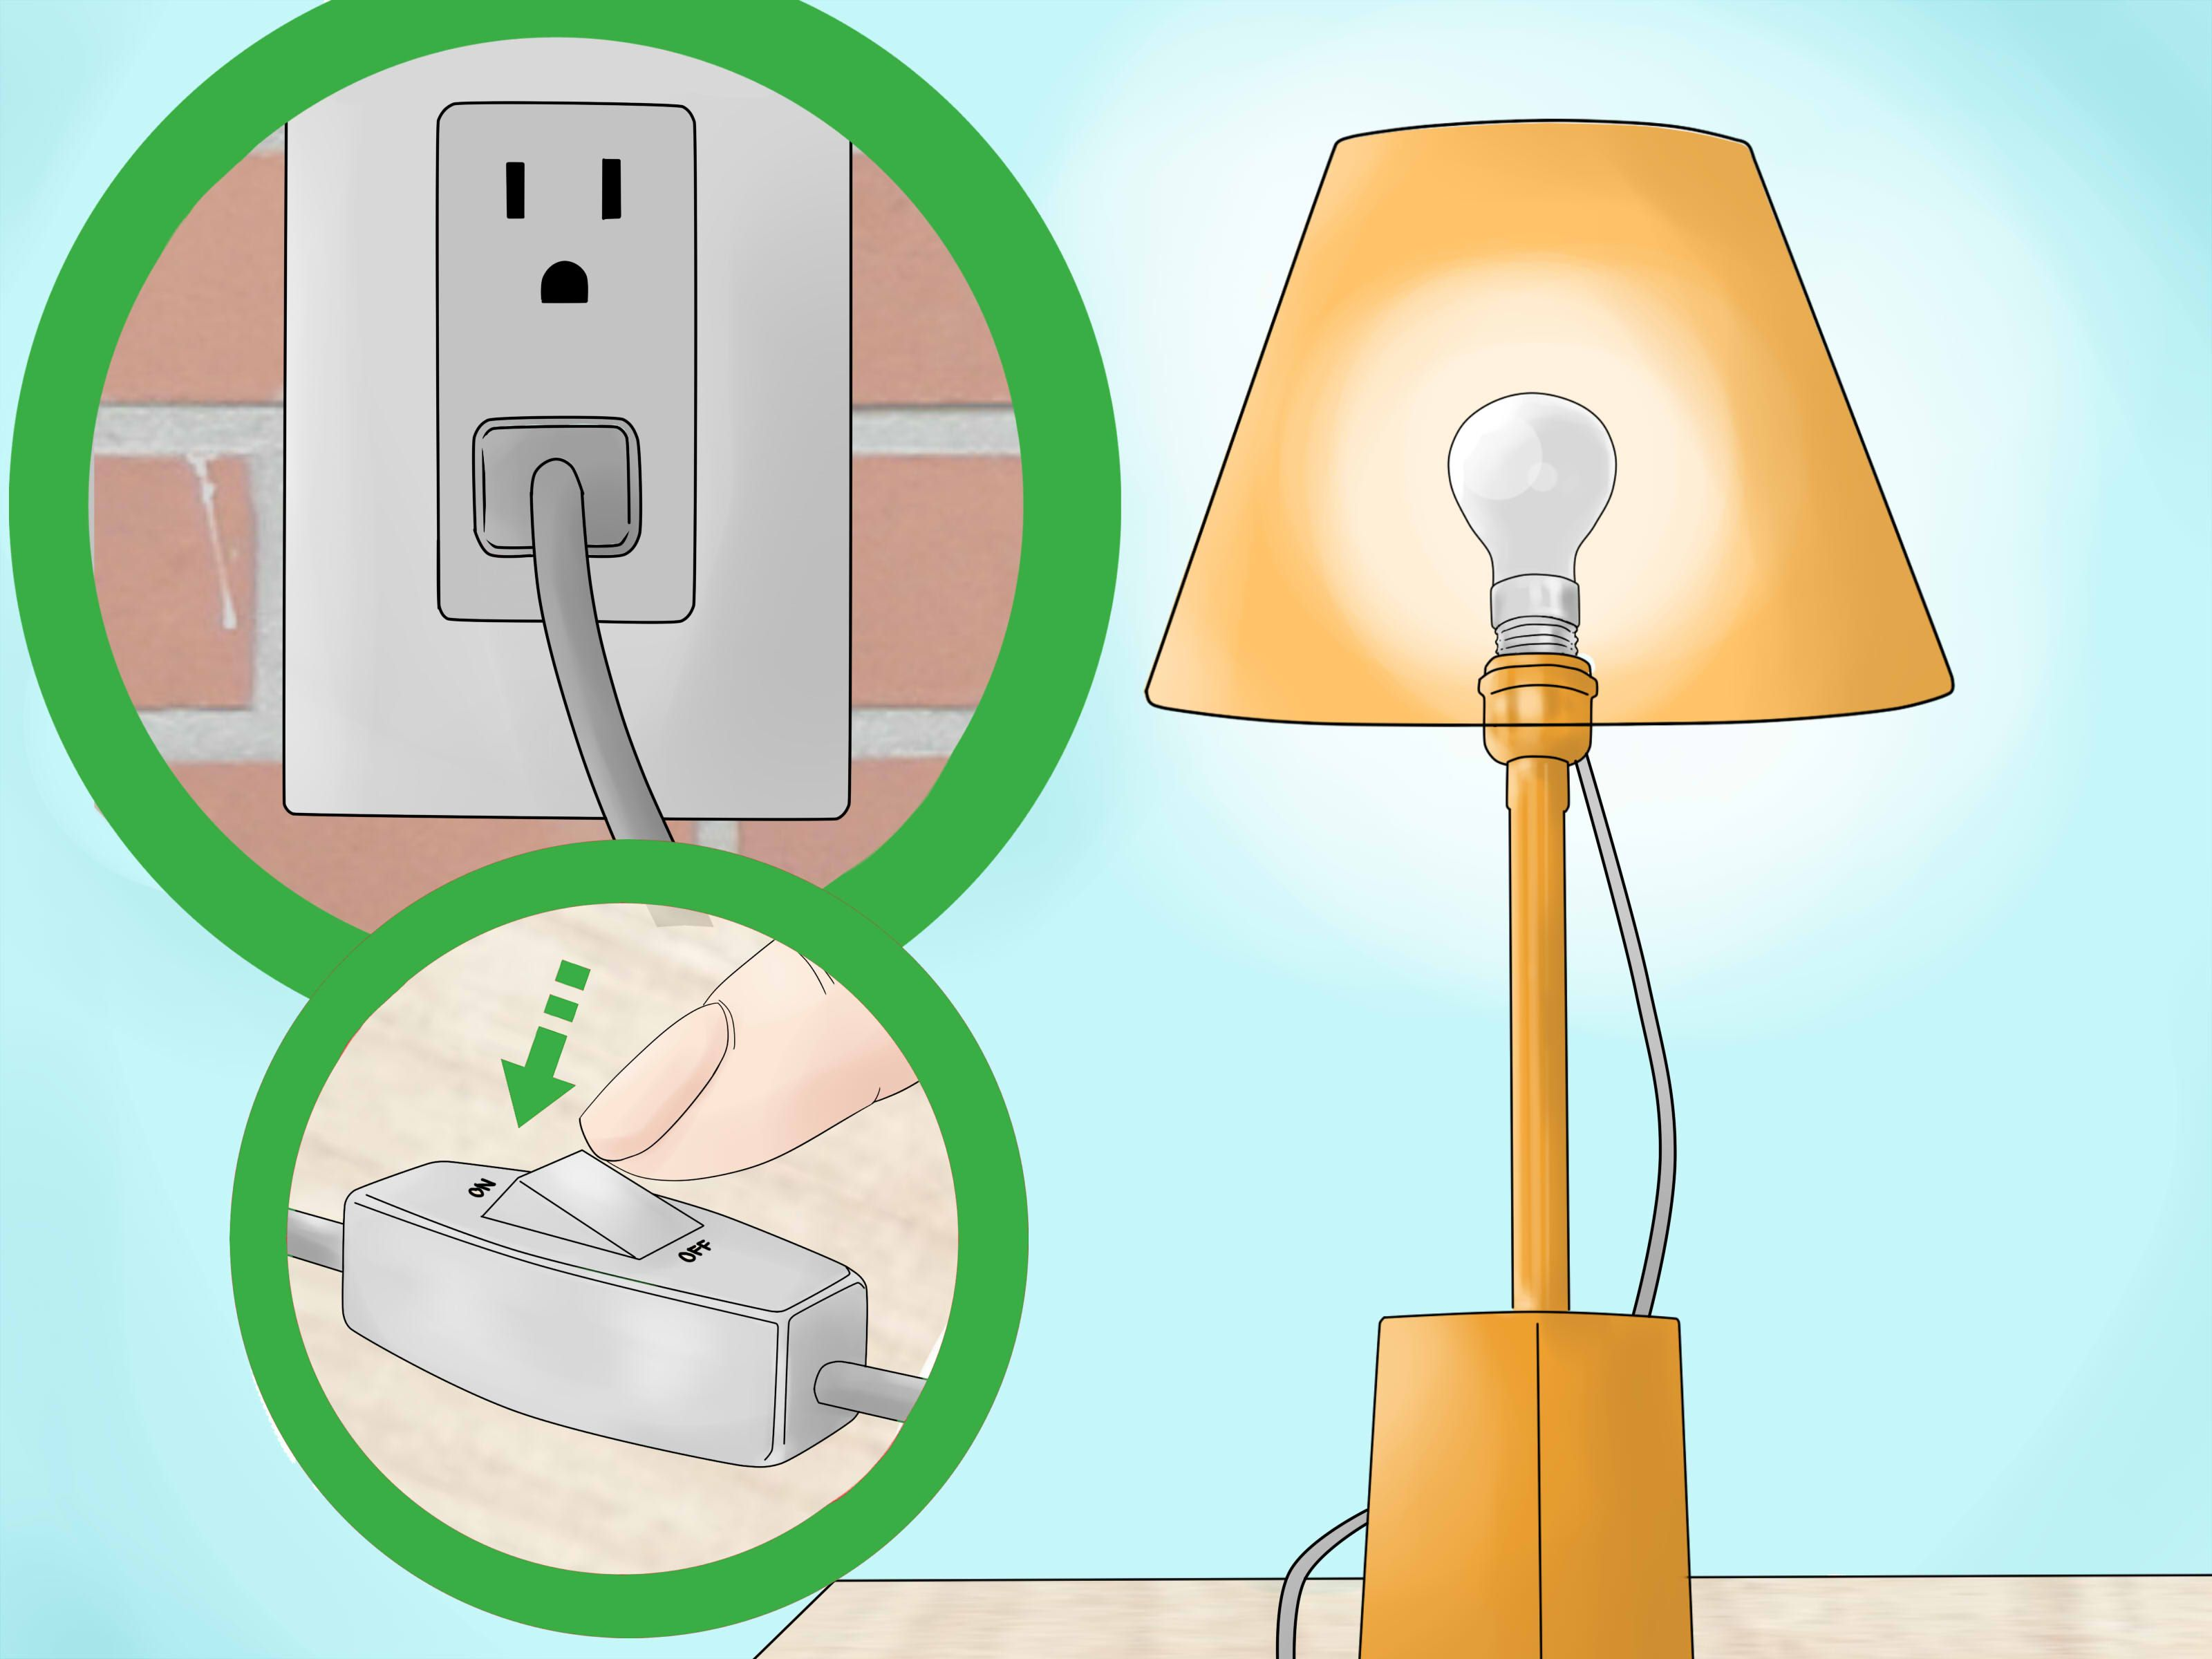 Replace A Lamp Switch Lamp Switch Table Lamp Lighting